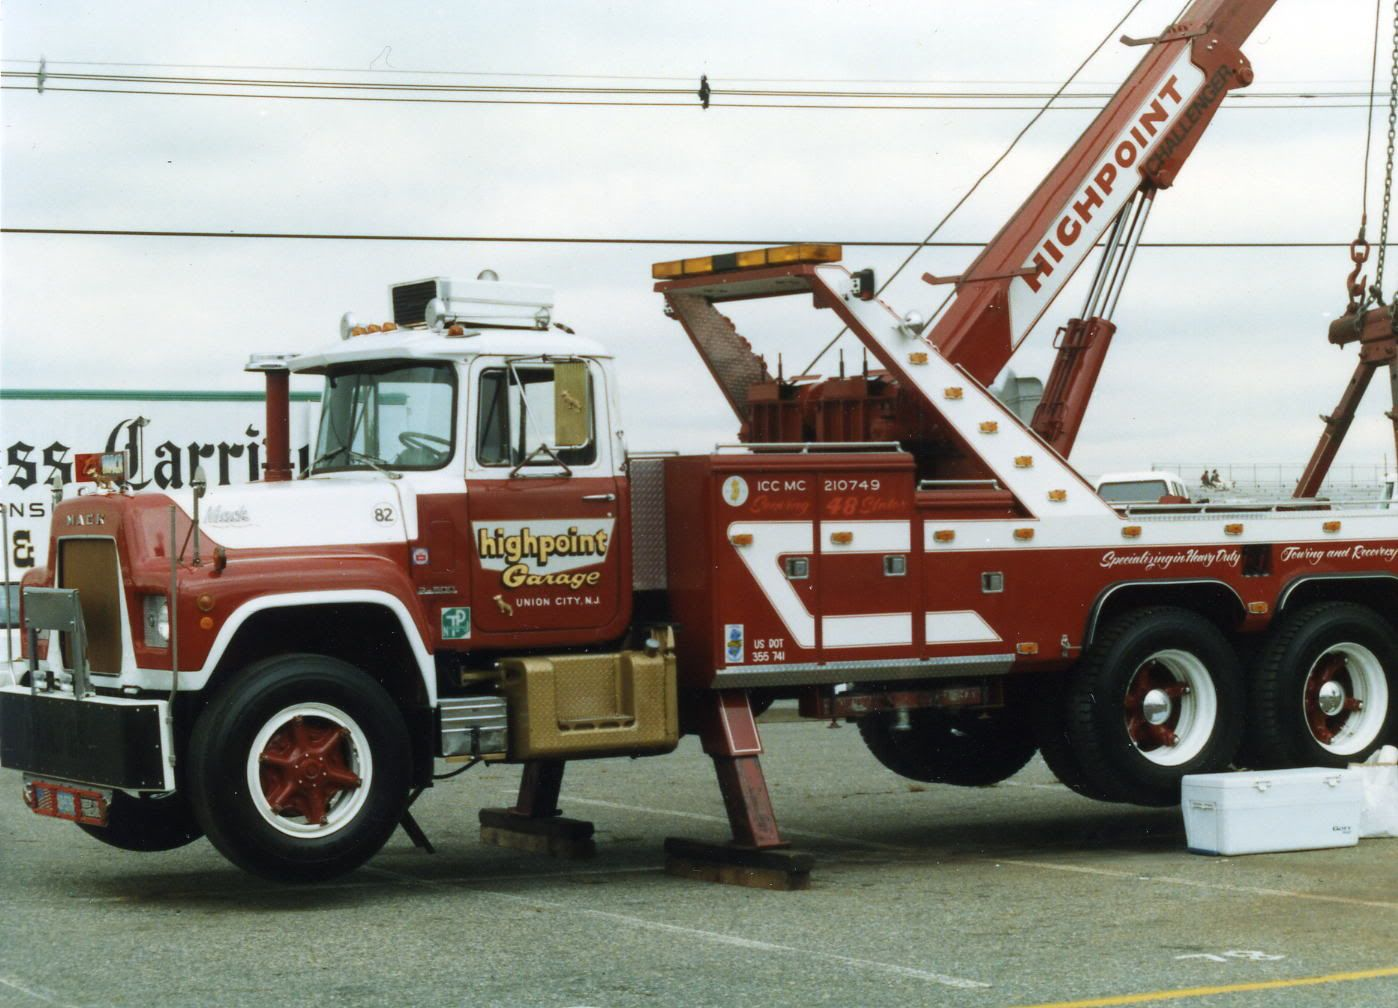 Pin by junkyard donut on mack | Pinterest | Tow truck and Tractor